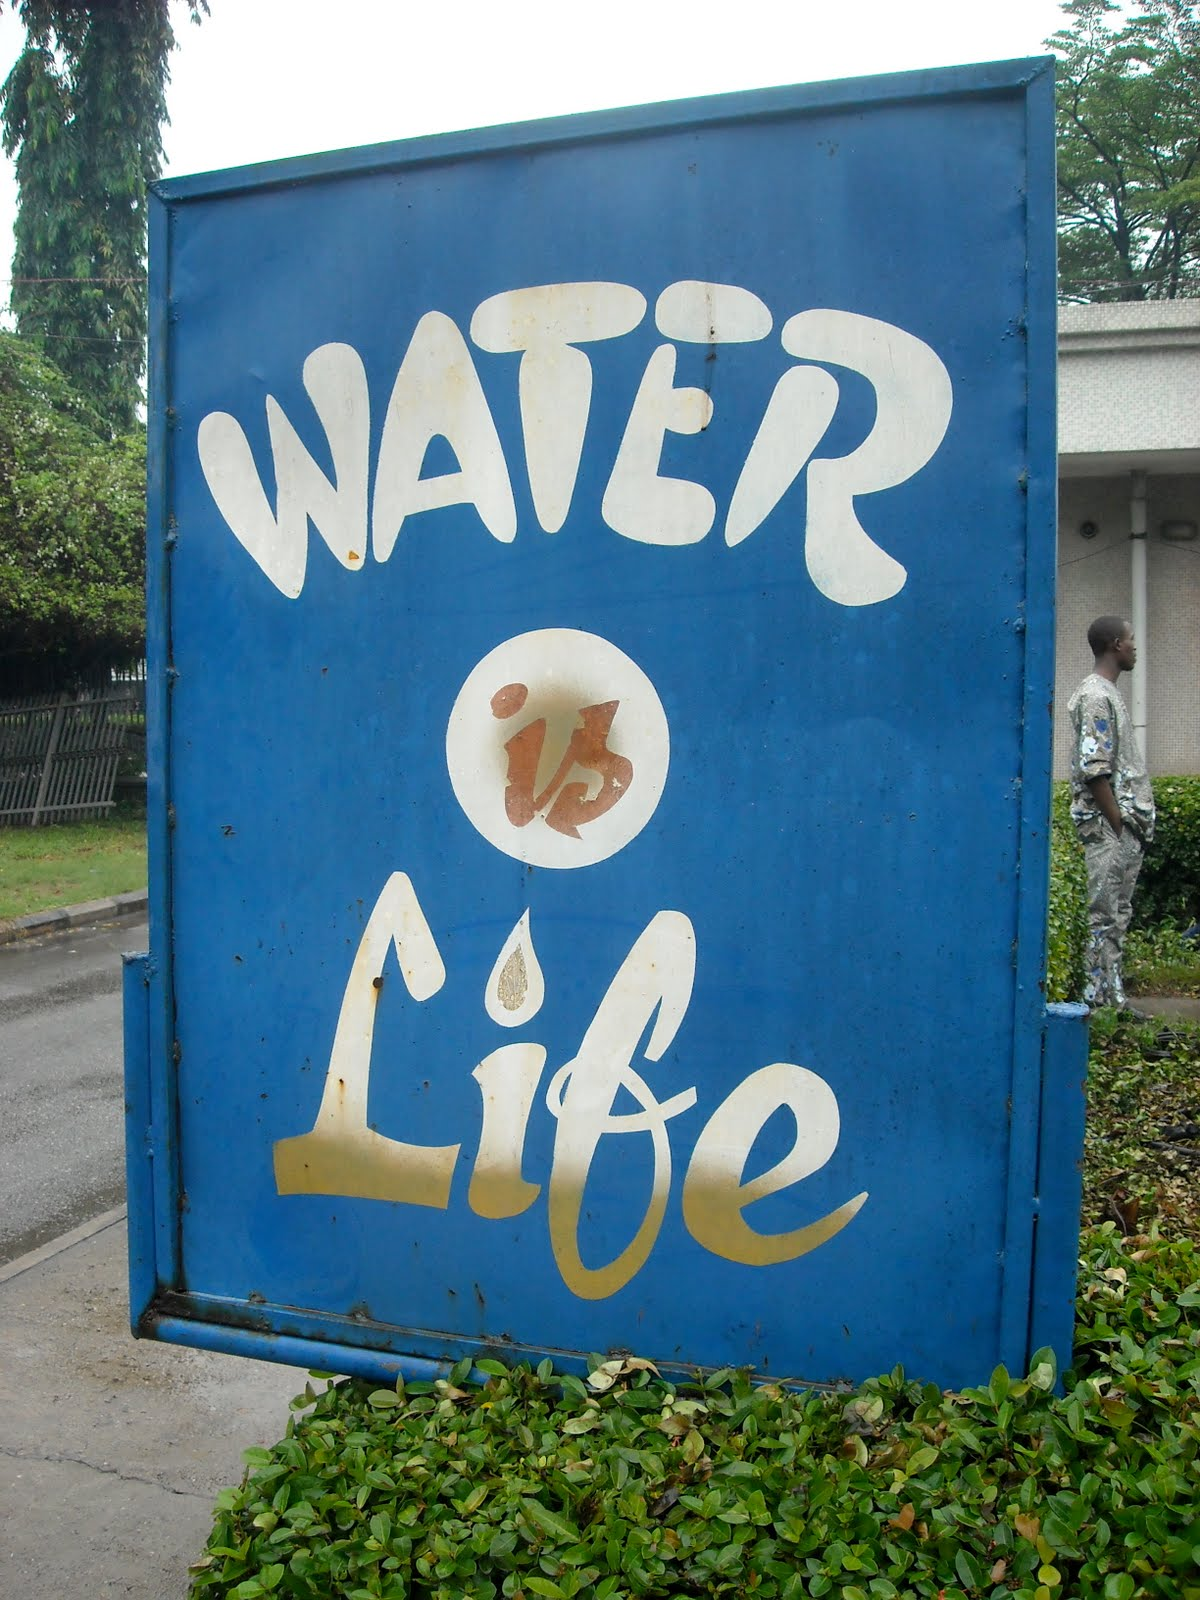 Water issues in Lagos